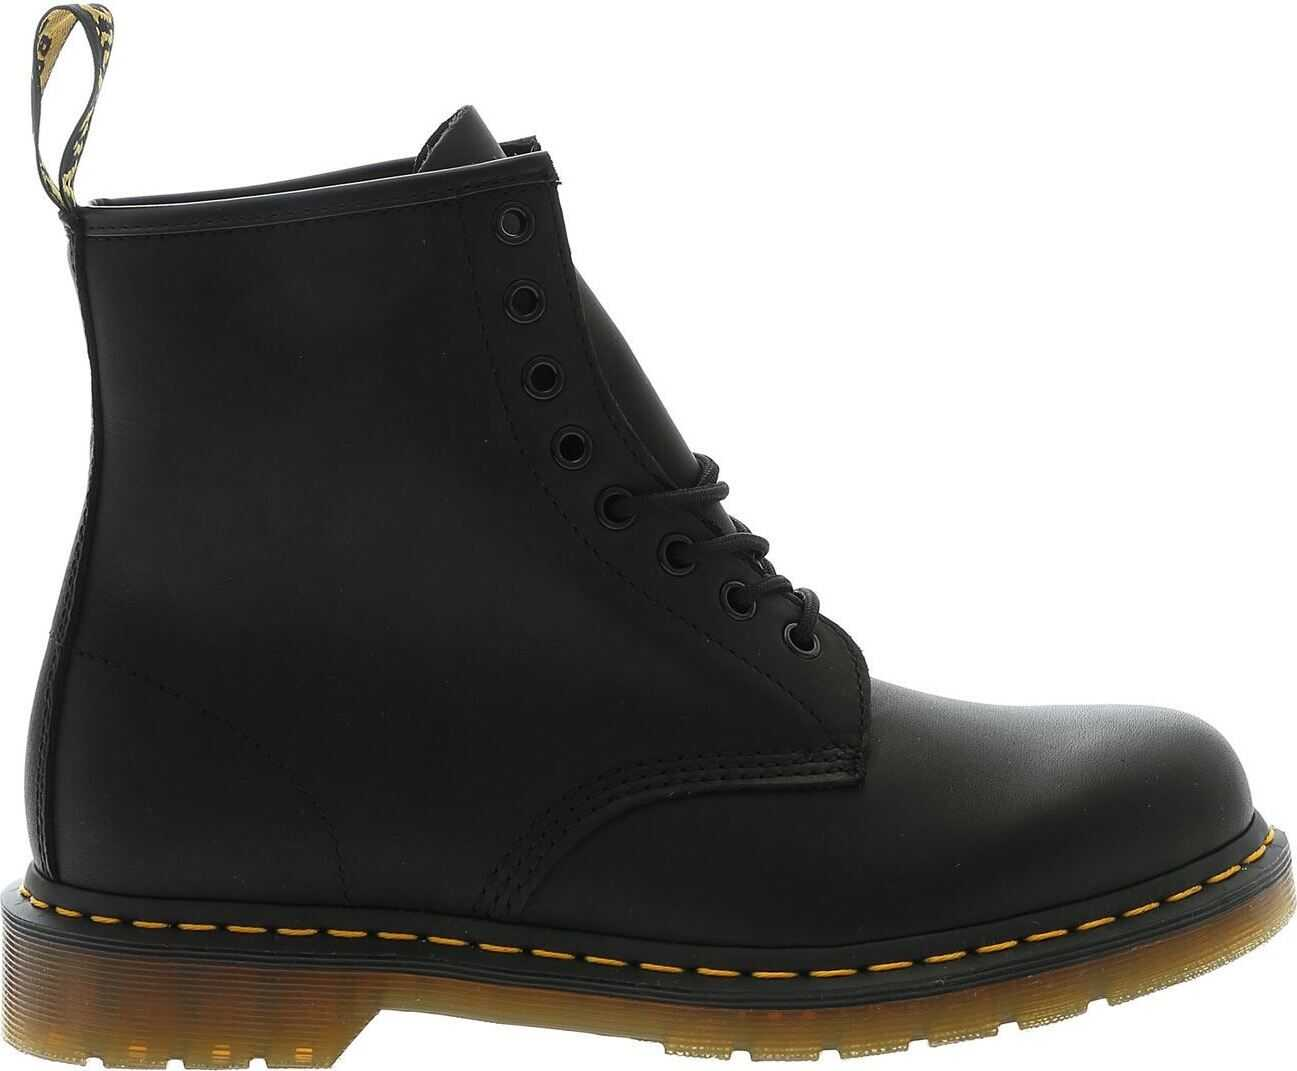 Dr. Martens 1460 Greasy Boots In Black Black